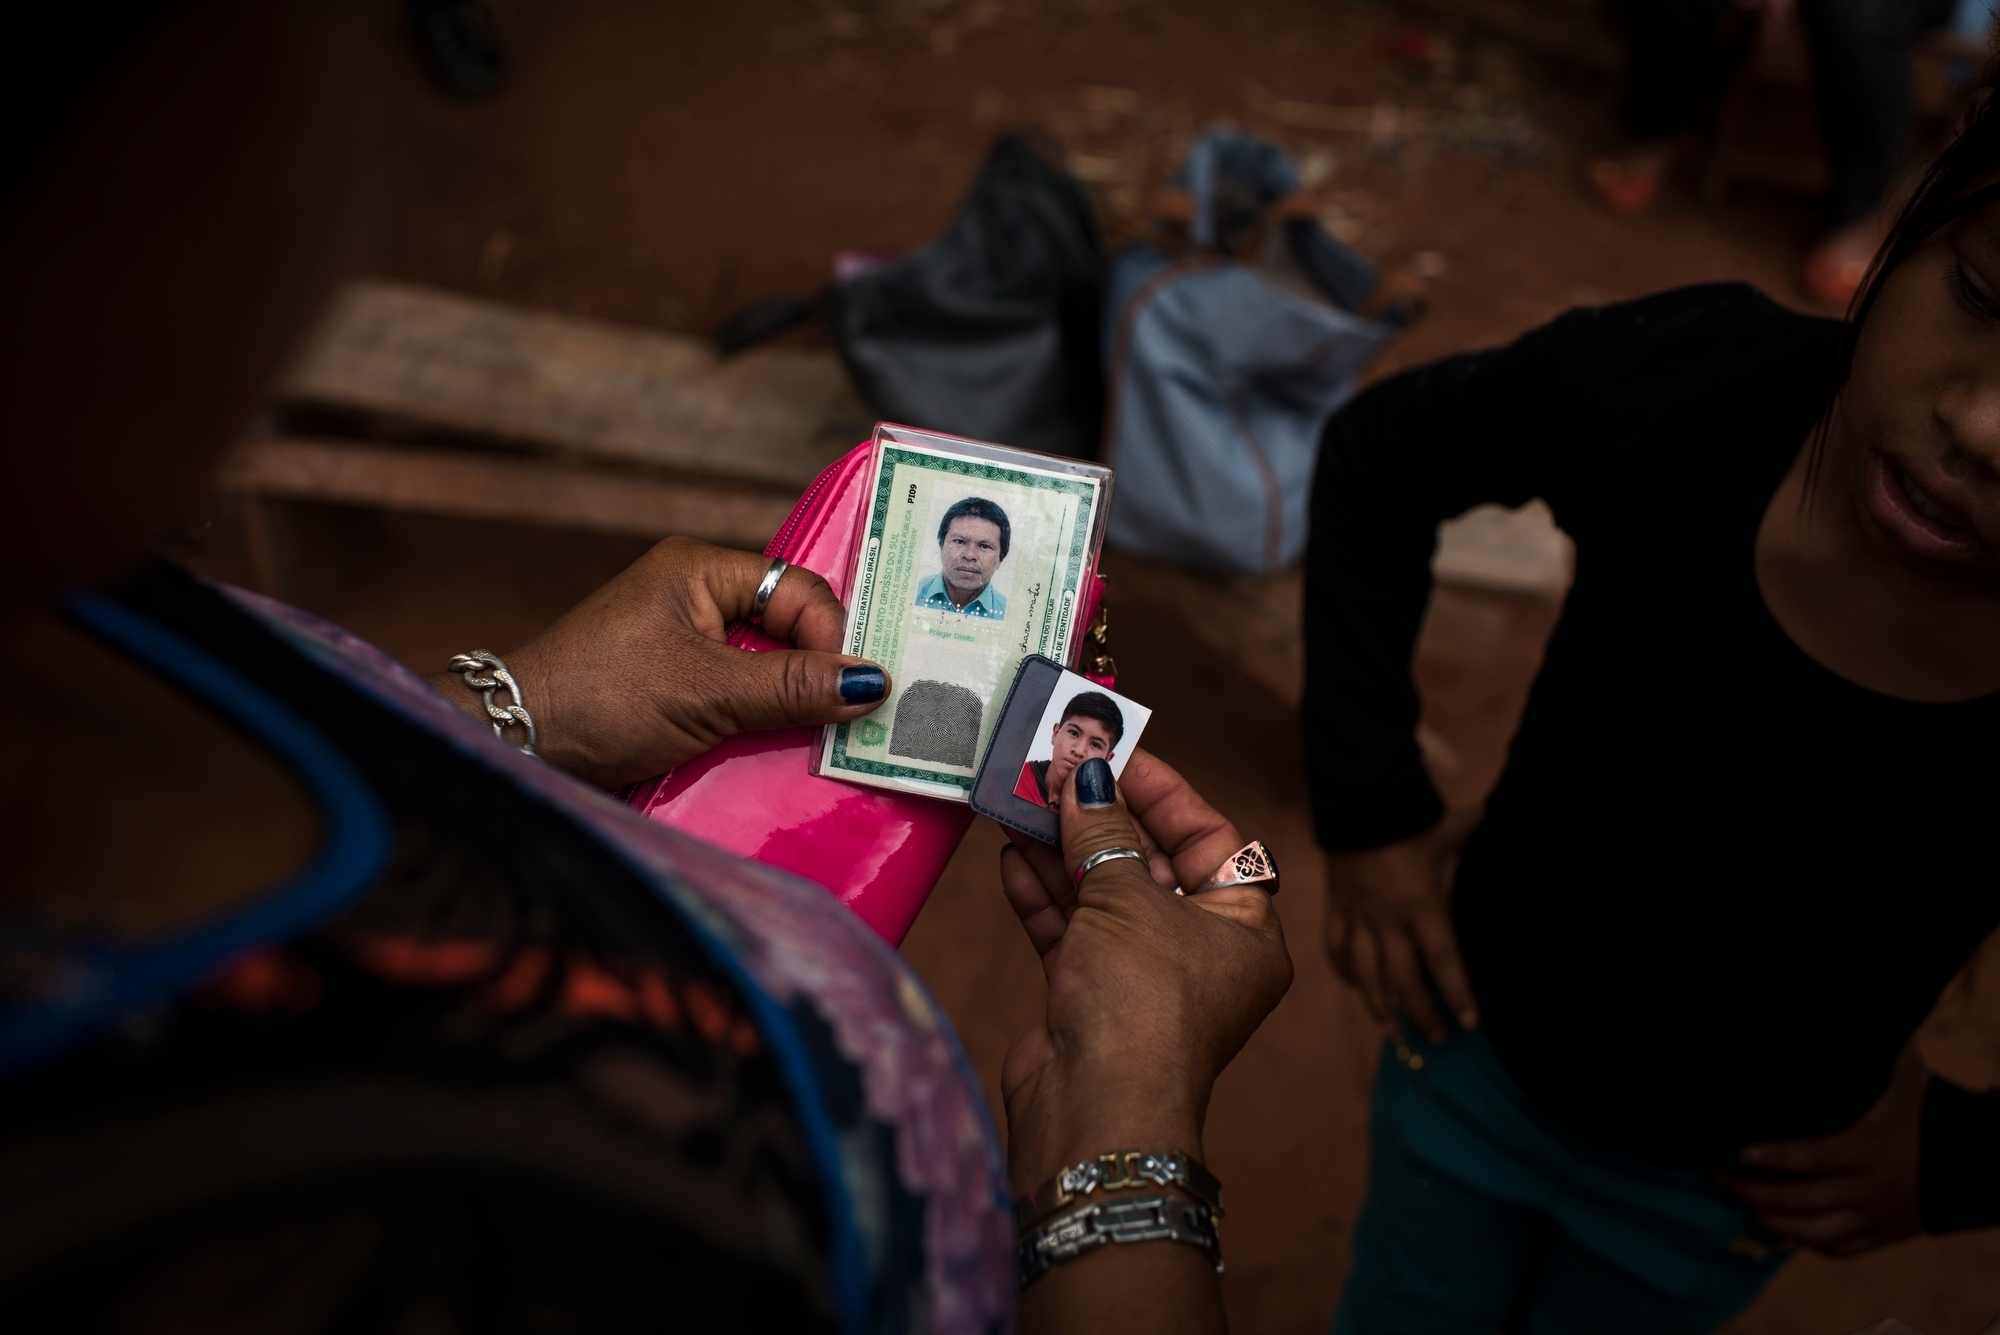 November 29, 2016.  Araci Samor, 41, holds two photos of her husband Nivaldo Chara Martin, 42, and son Michelleu, 15, in the Guarani-Kaiowa Amambai Indigenous Reserve in Matto Grosso Du Sul, Brazil. Her husband committed suicide last christmas day and her son o a year ago on January 2. Her daughter Nicole Sarmori Martin looks on. The reserve has one of the highest suicide rates in the world.